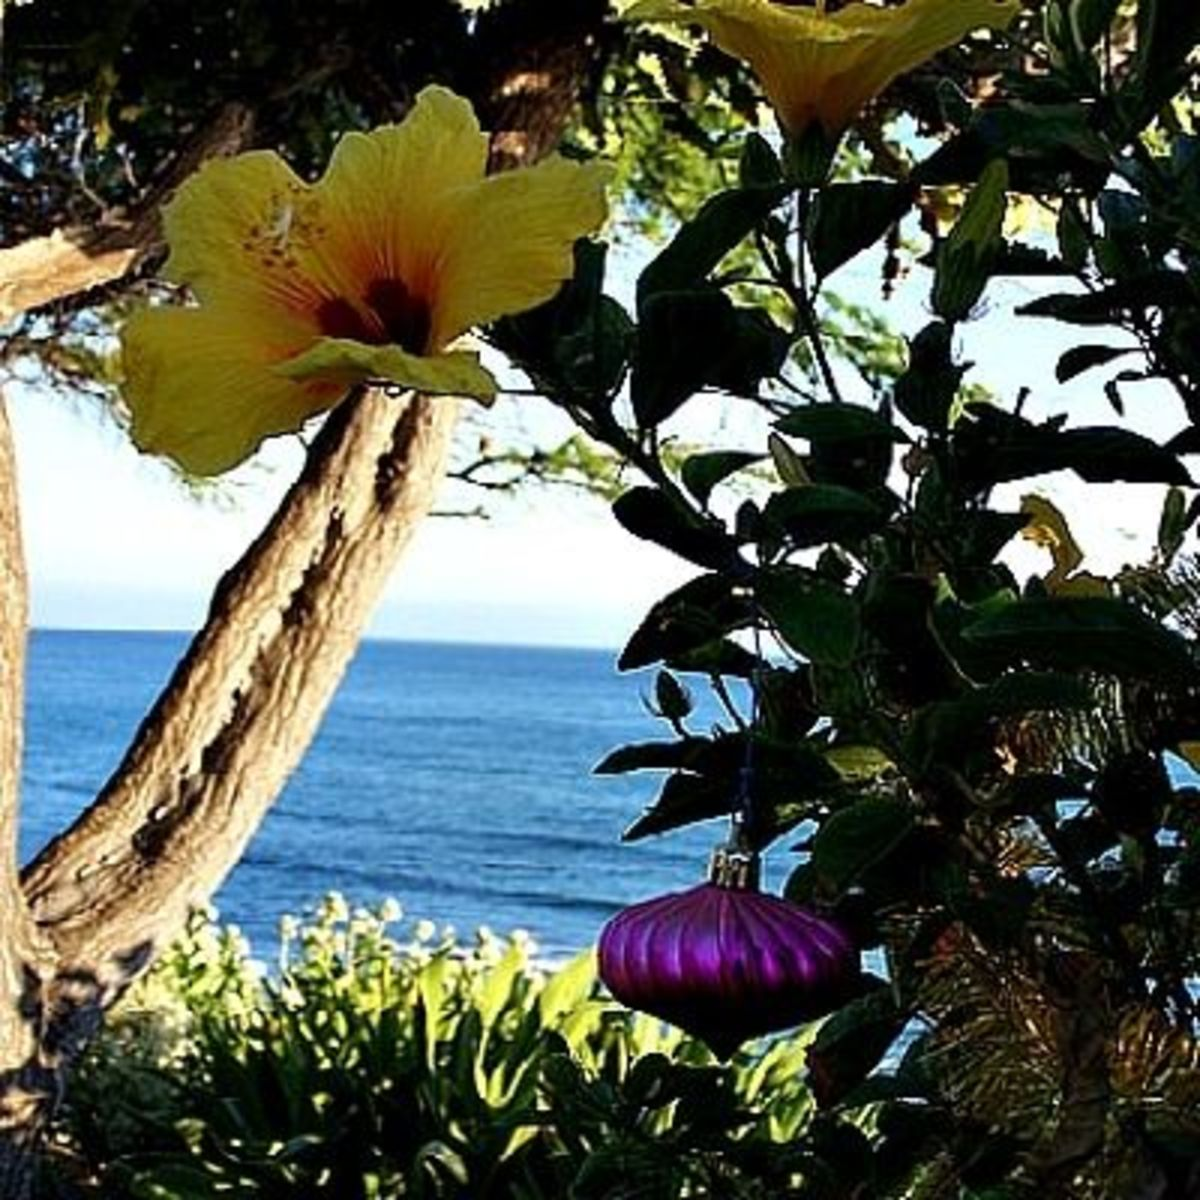 Hang an ornament with the yellow hibiscus